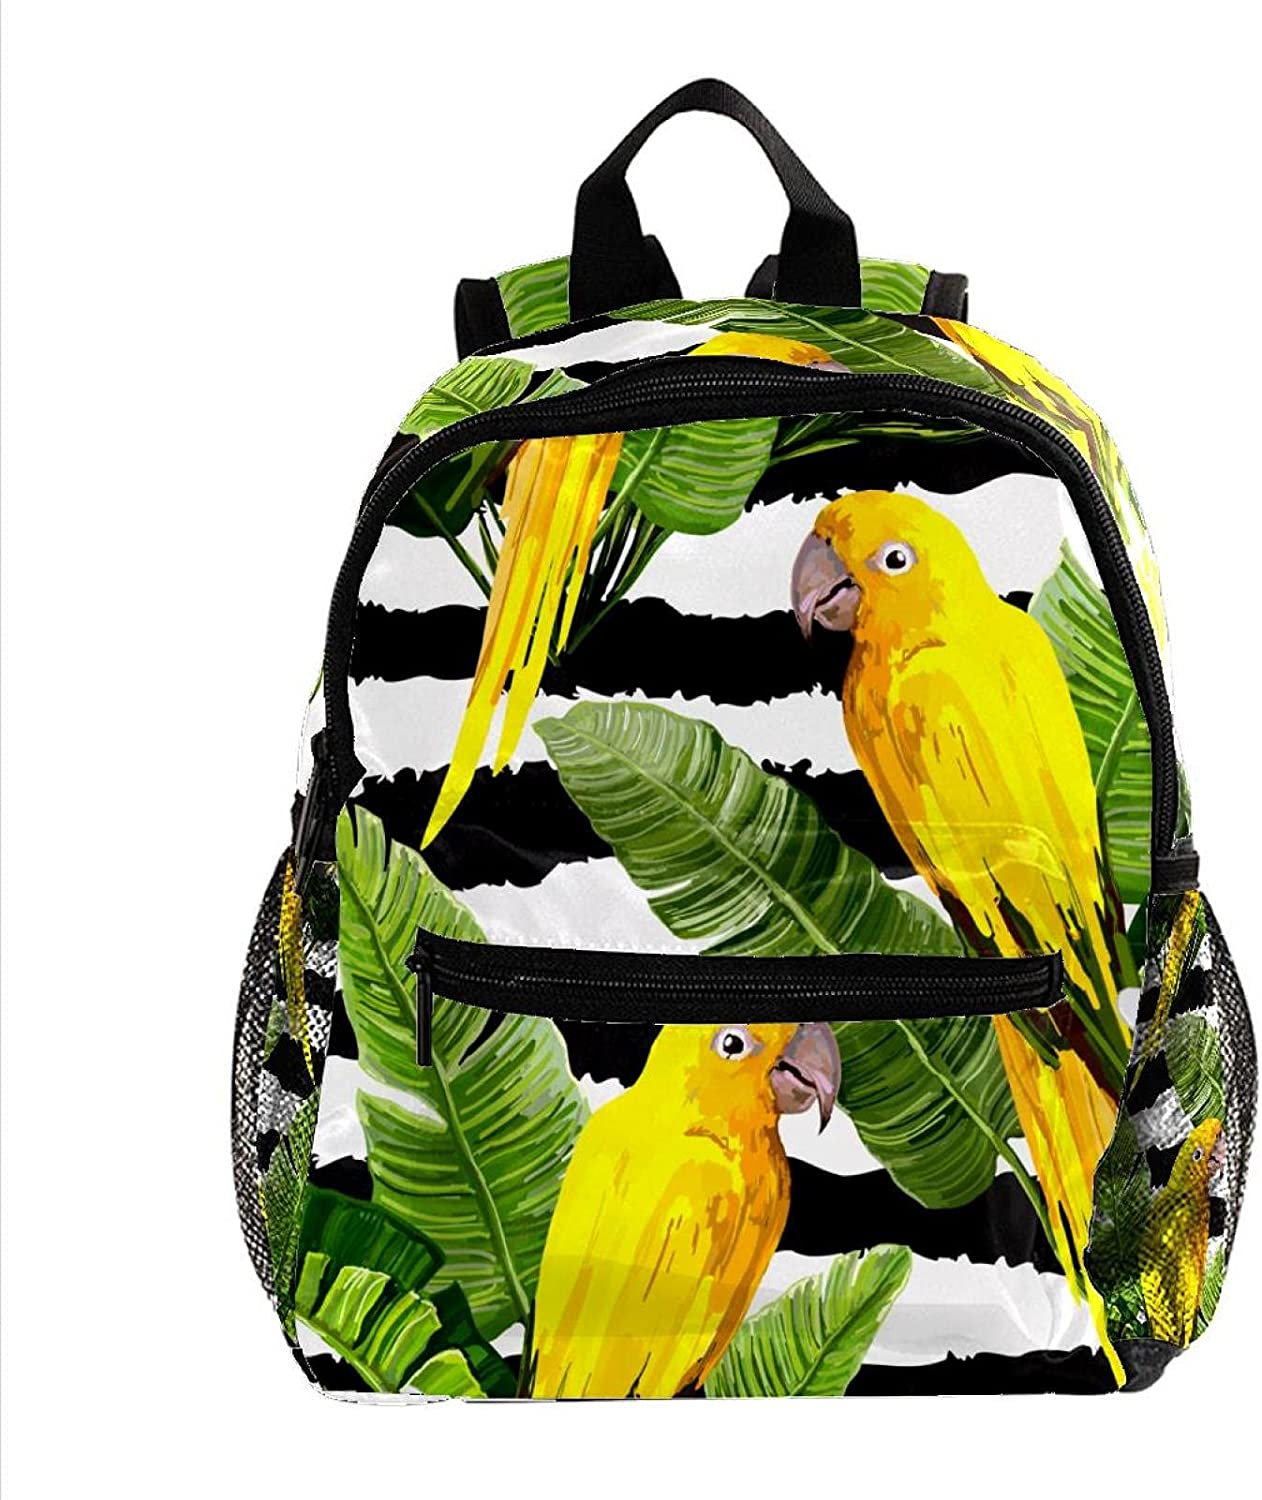 Backpack for Teen Girls Boy Daypack Bag Walk Travel trop All stores are sold Ranking TOP13 Outdoor